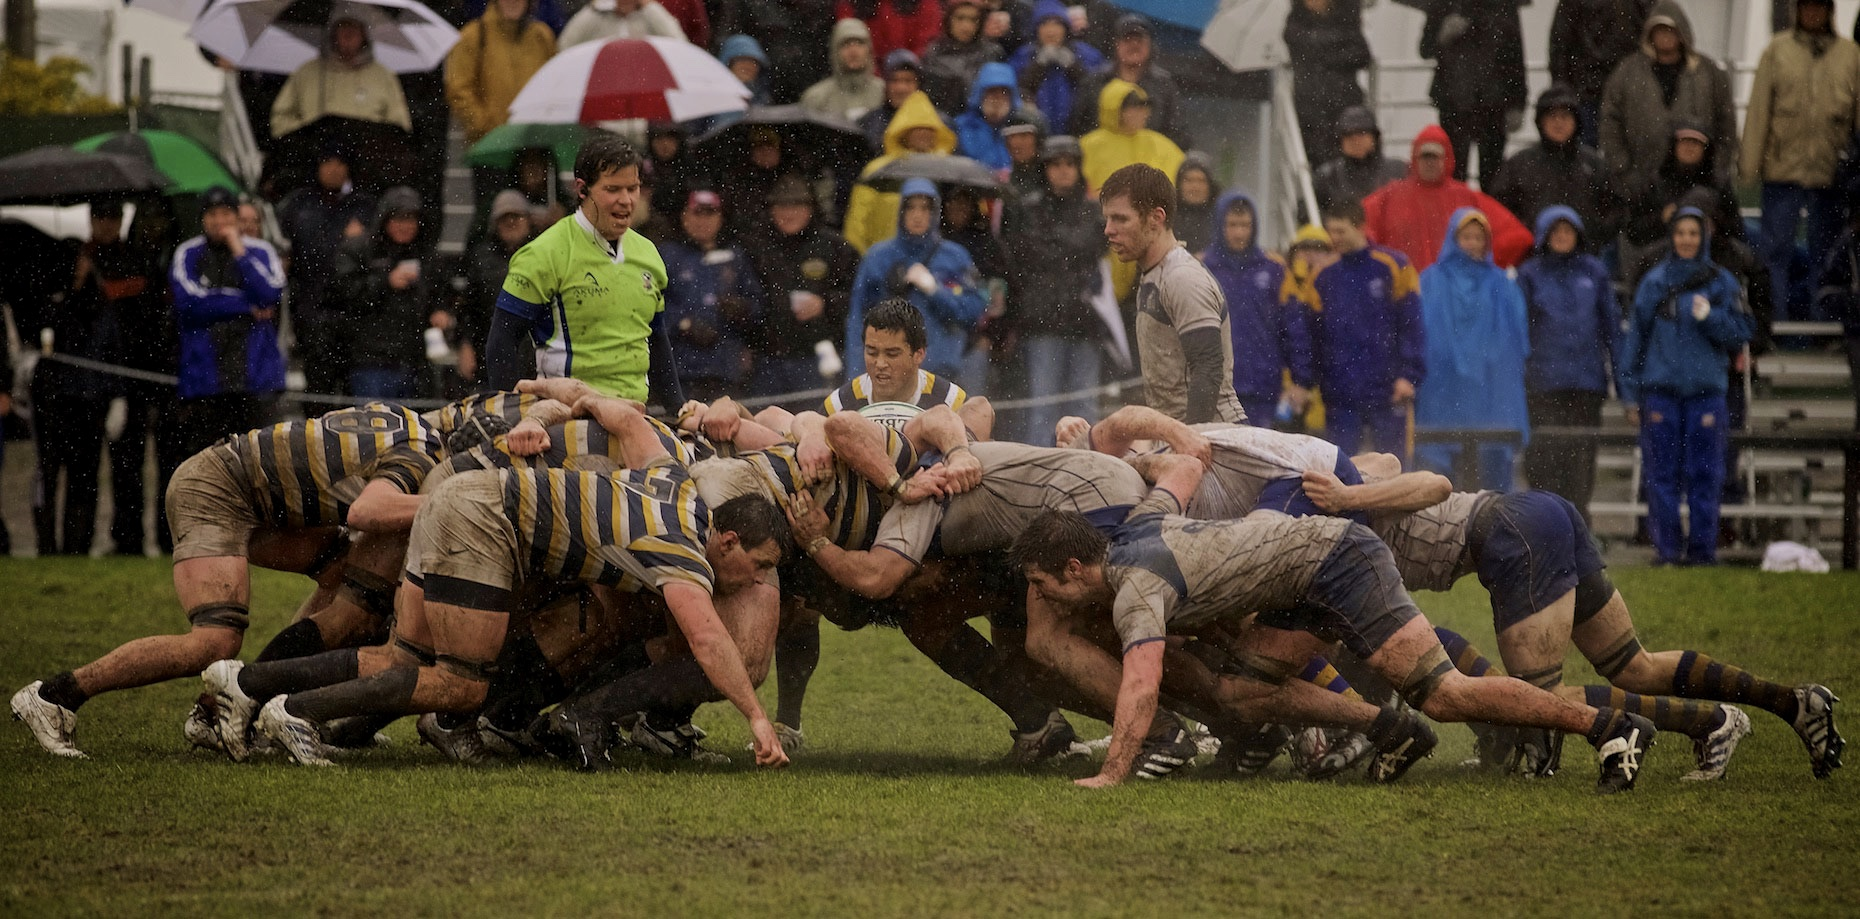 Rugby, Rain or Shine